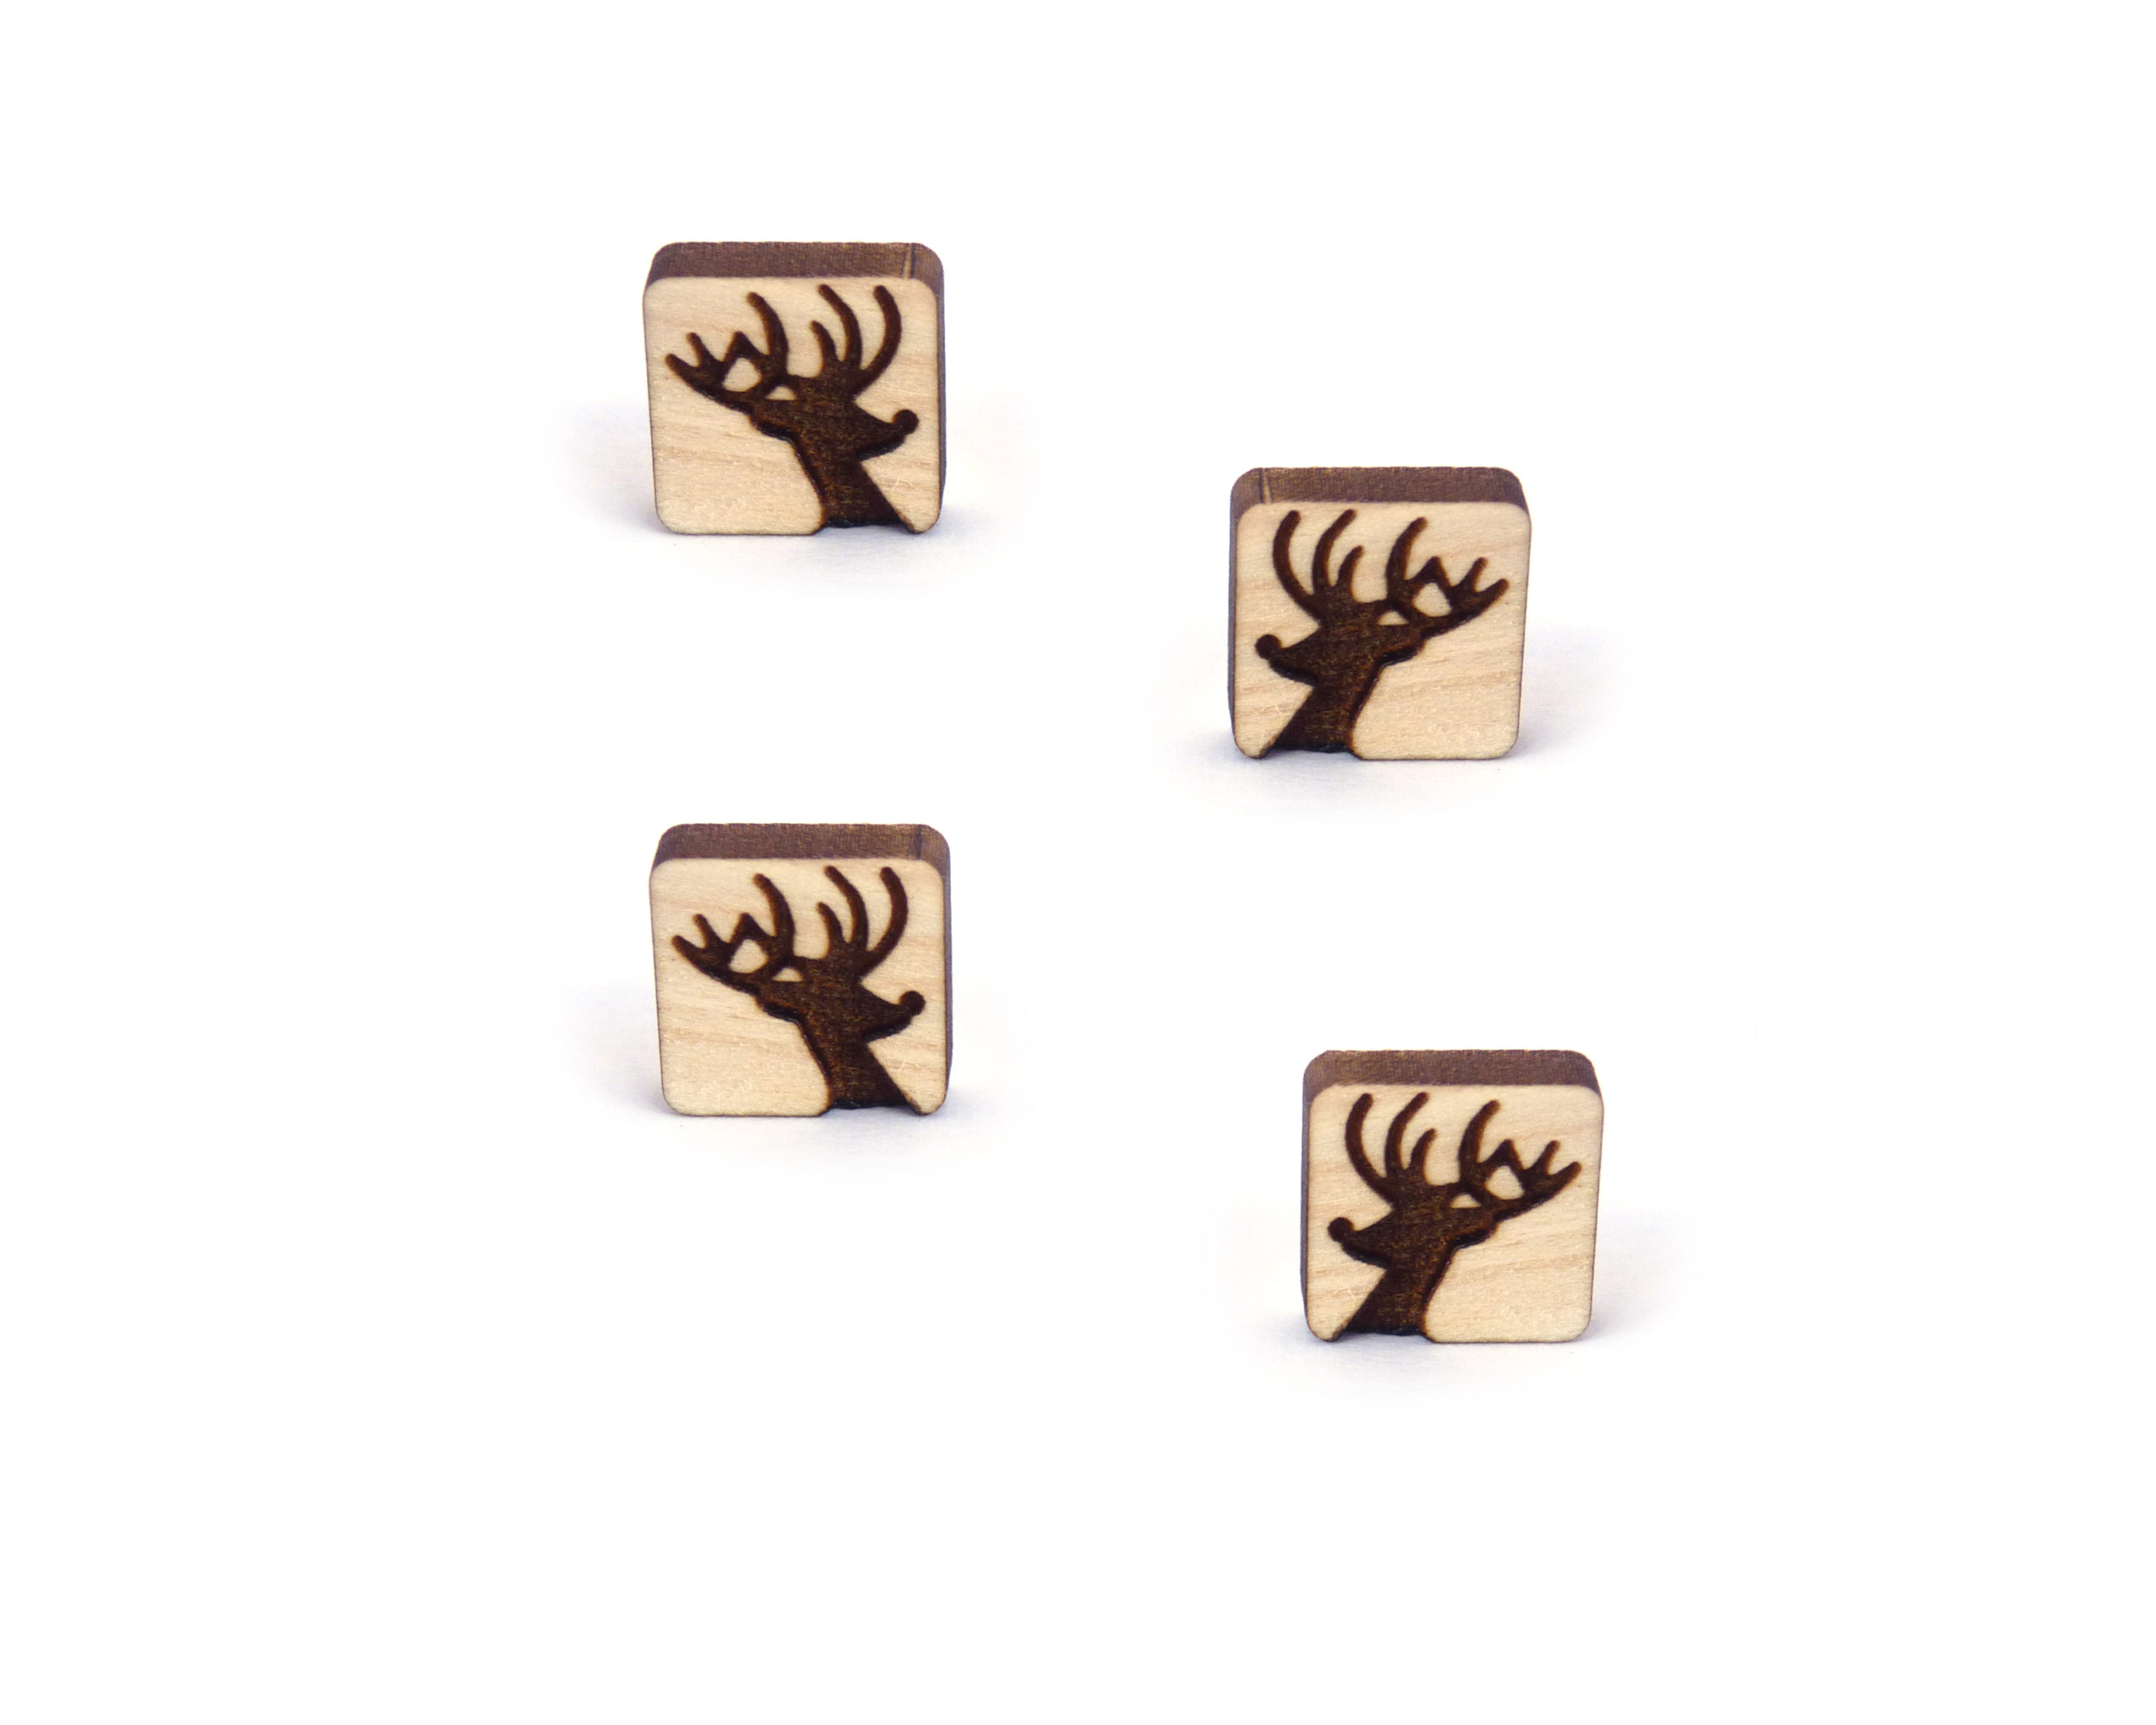 Rudolph Silhouette Engraved Wood Cabochons